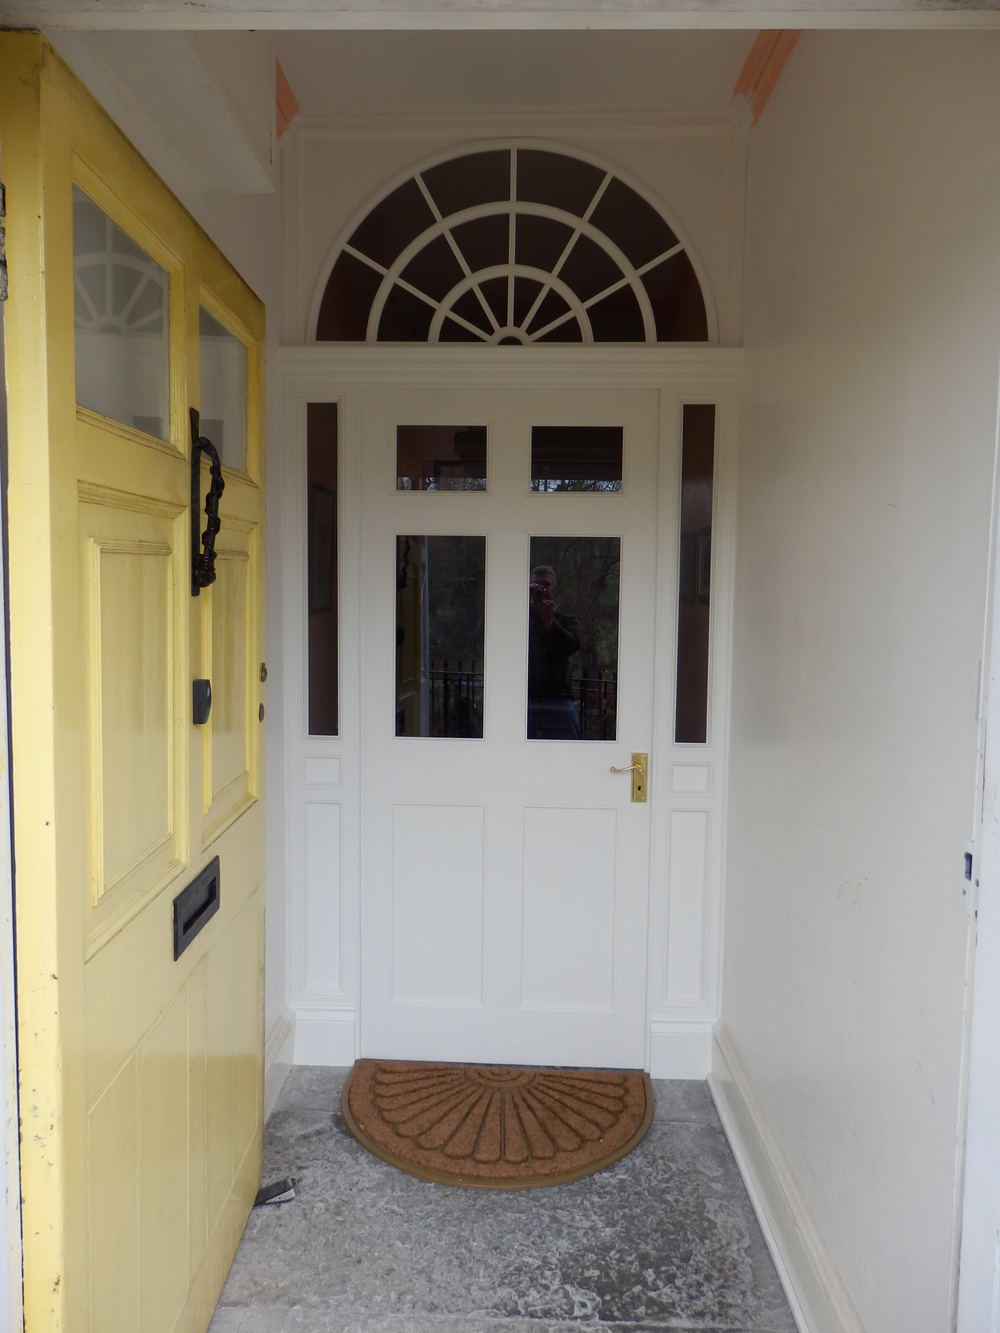 The second half of the project was to  make and fit a new inner door, window and surround. This was designed to fit the period of the house and give an 'always been there' feel.